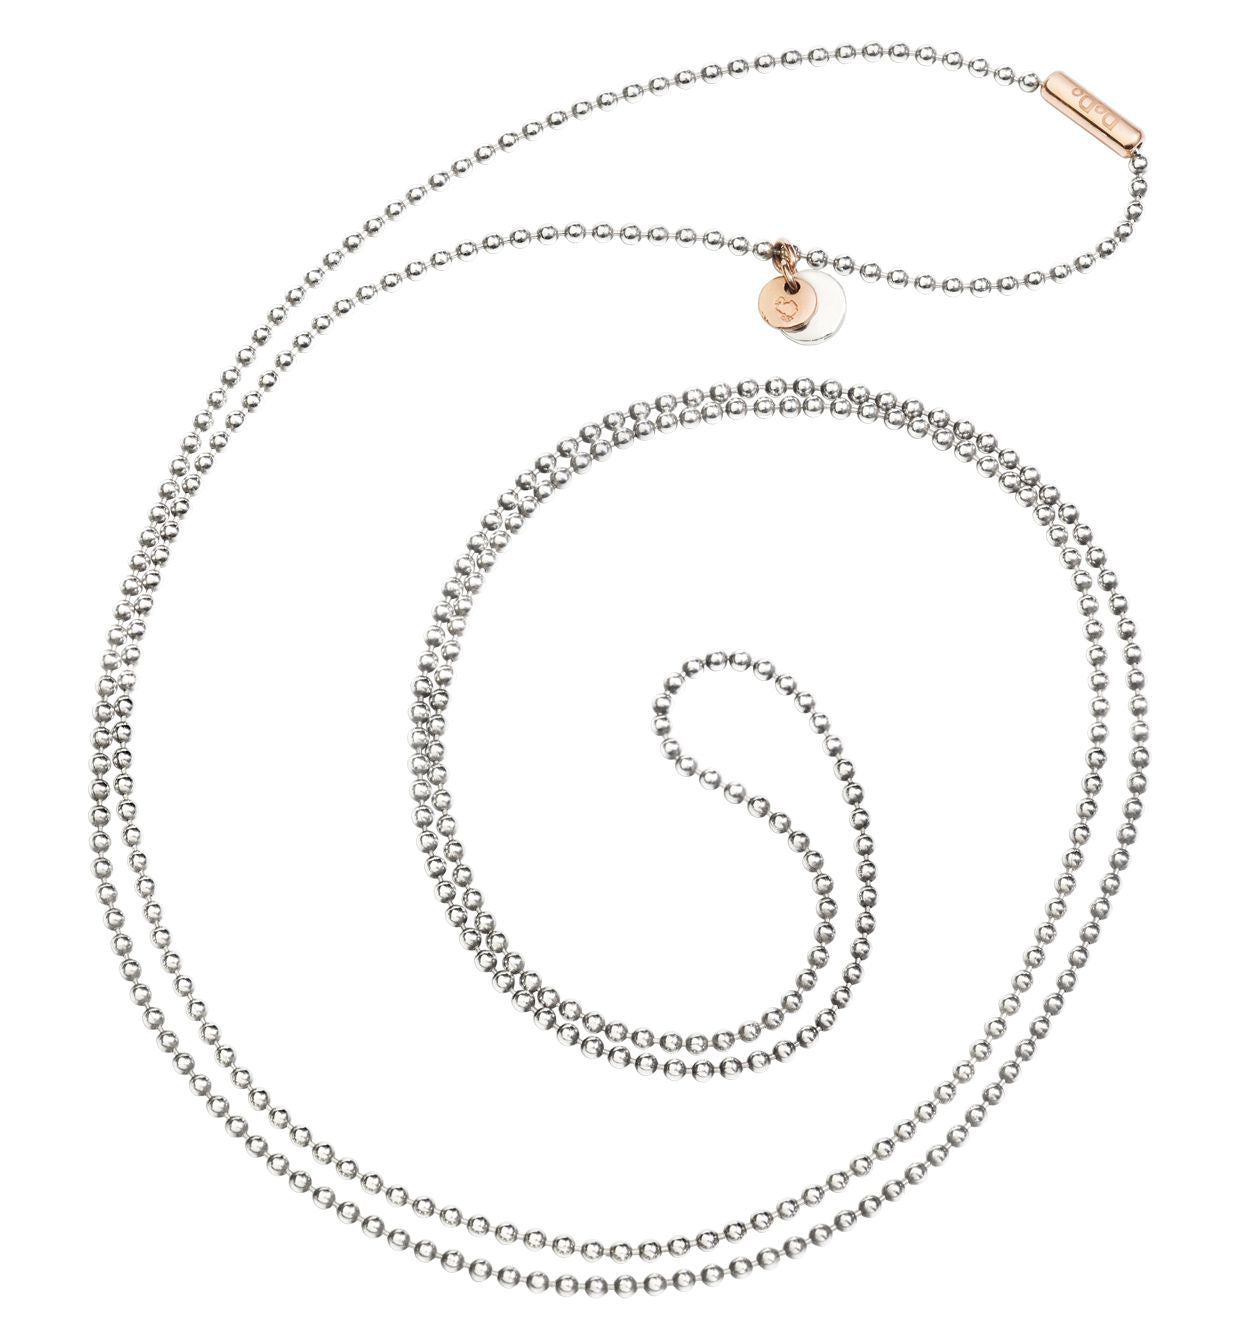 Dodo Bollicine Necklace in Silver with 9k Rose Gold Medallion - Orsini Jewellers NZ